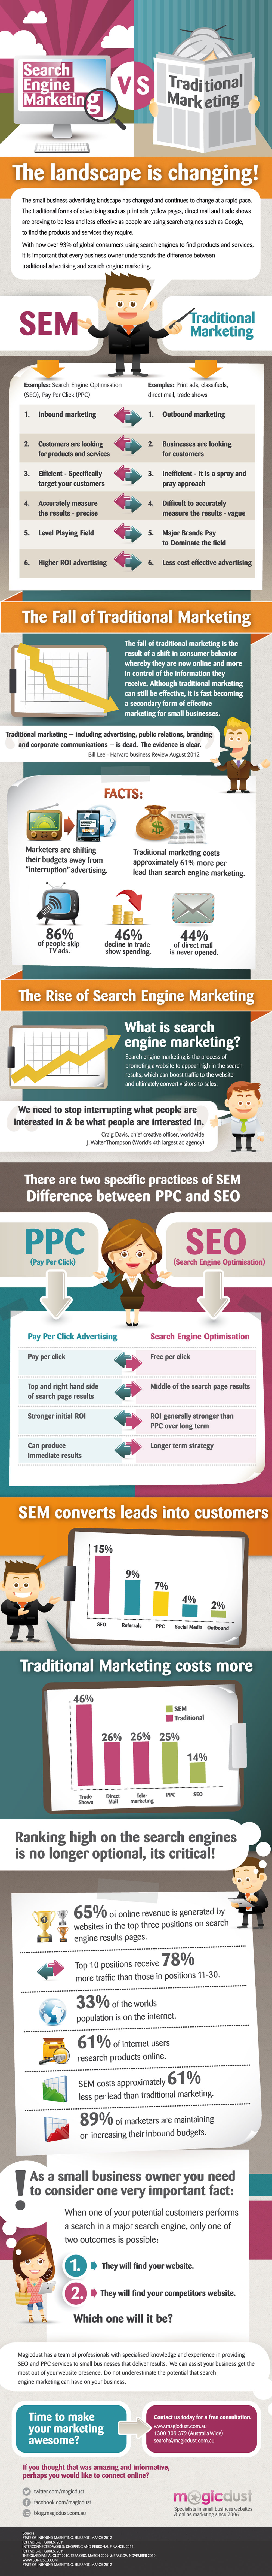 Search Engine Marketing vs Traditional Marketing